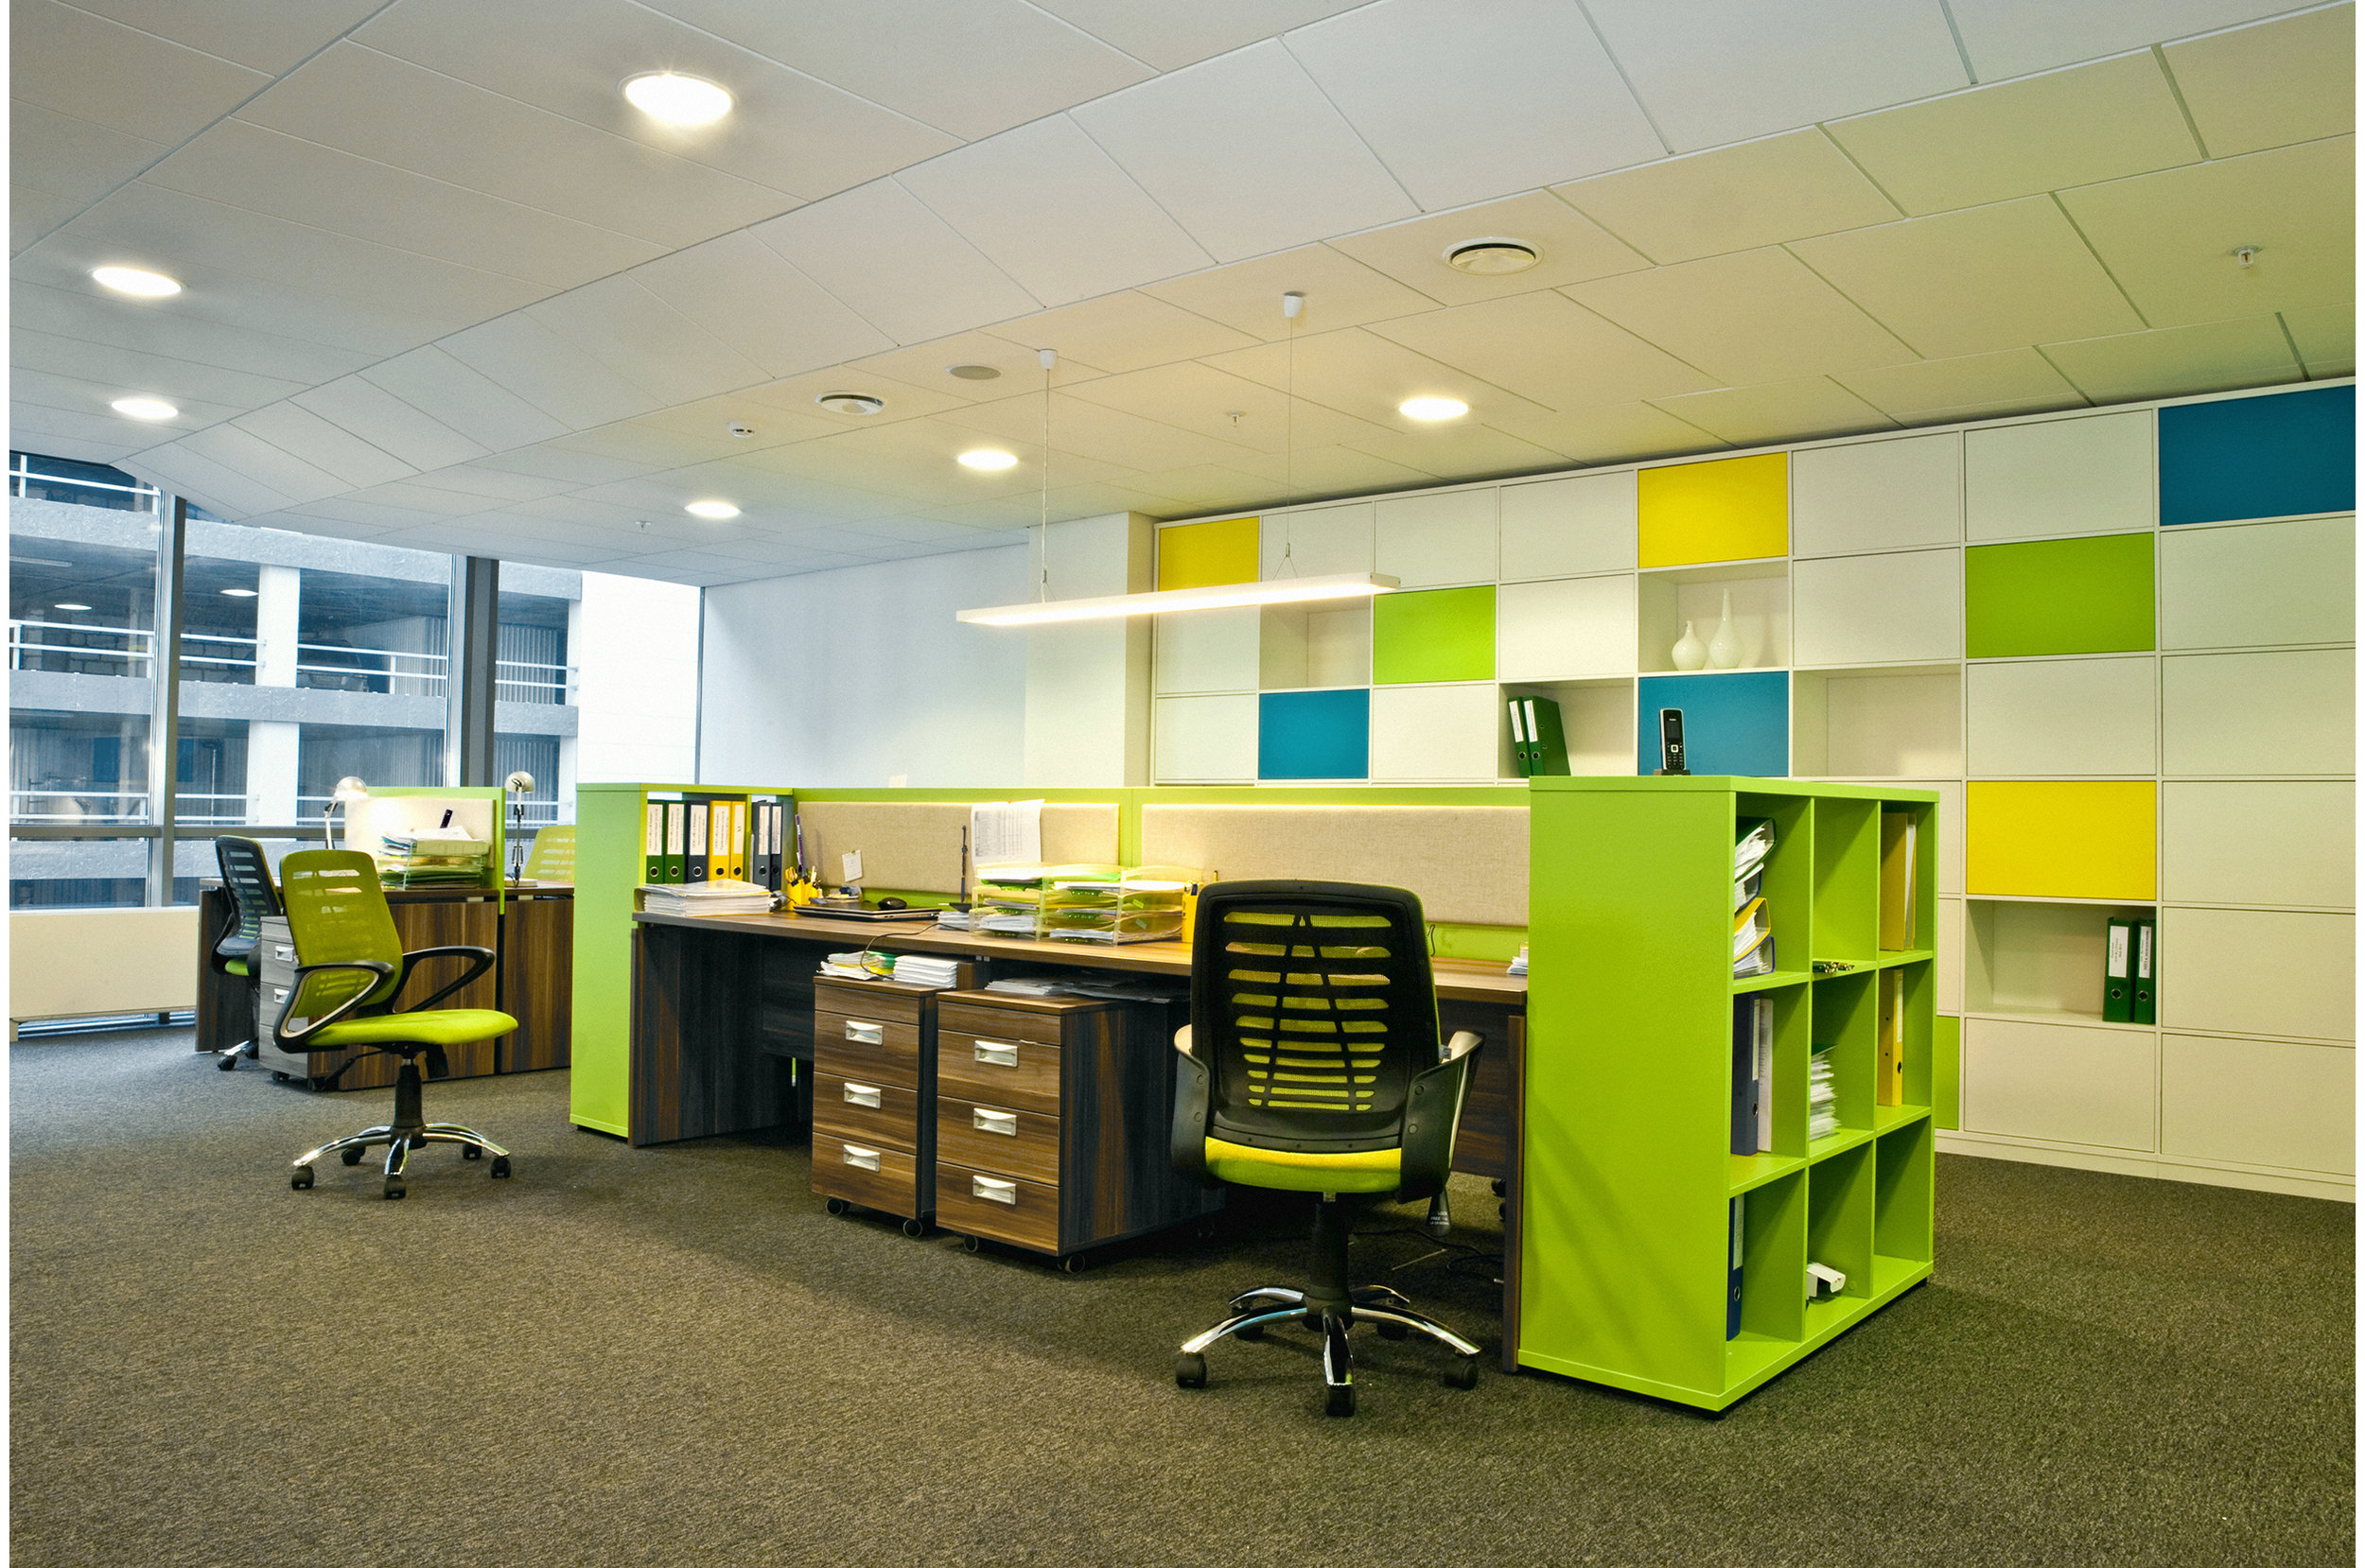 Office interior with bright colors